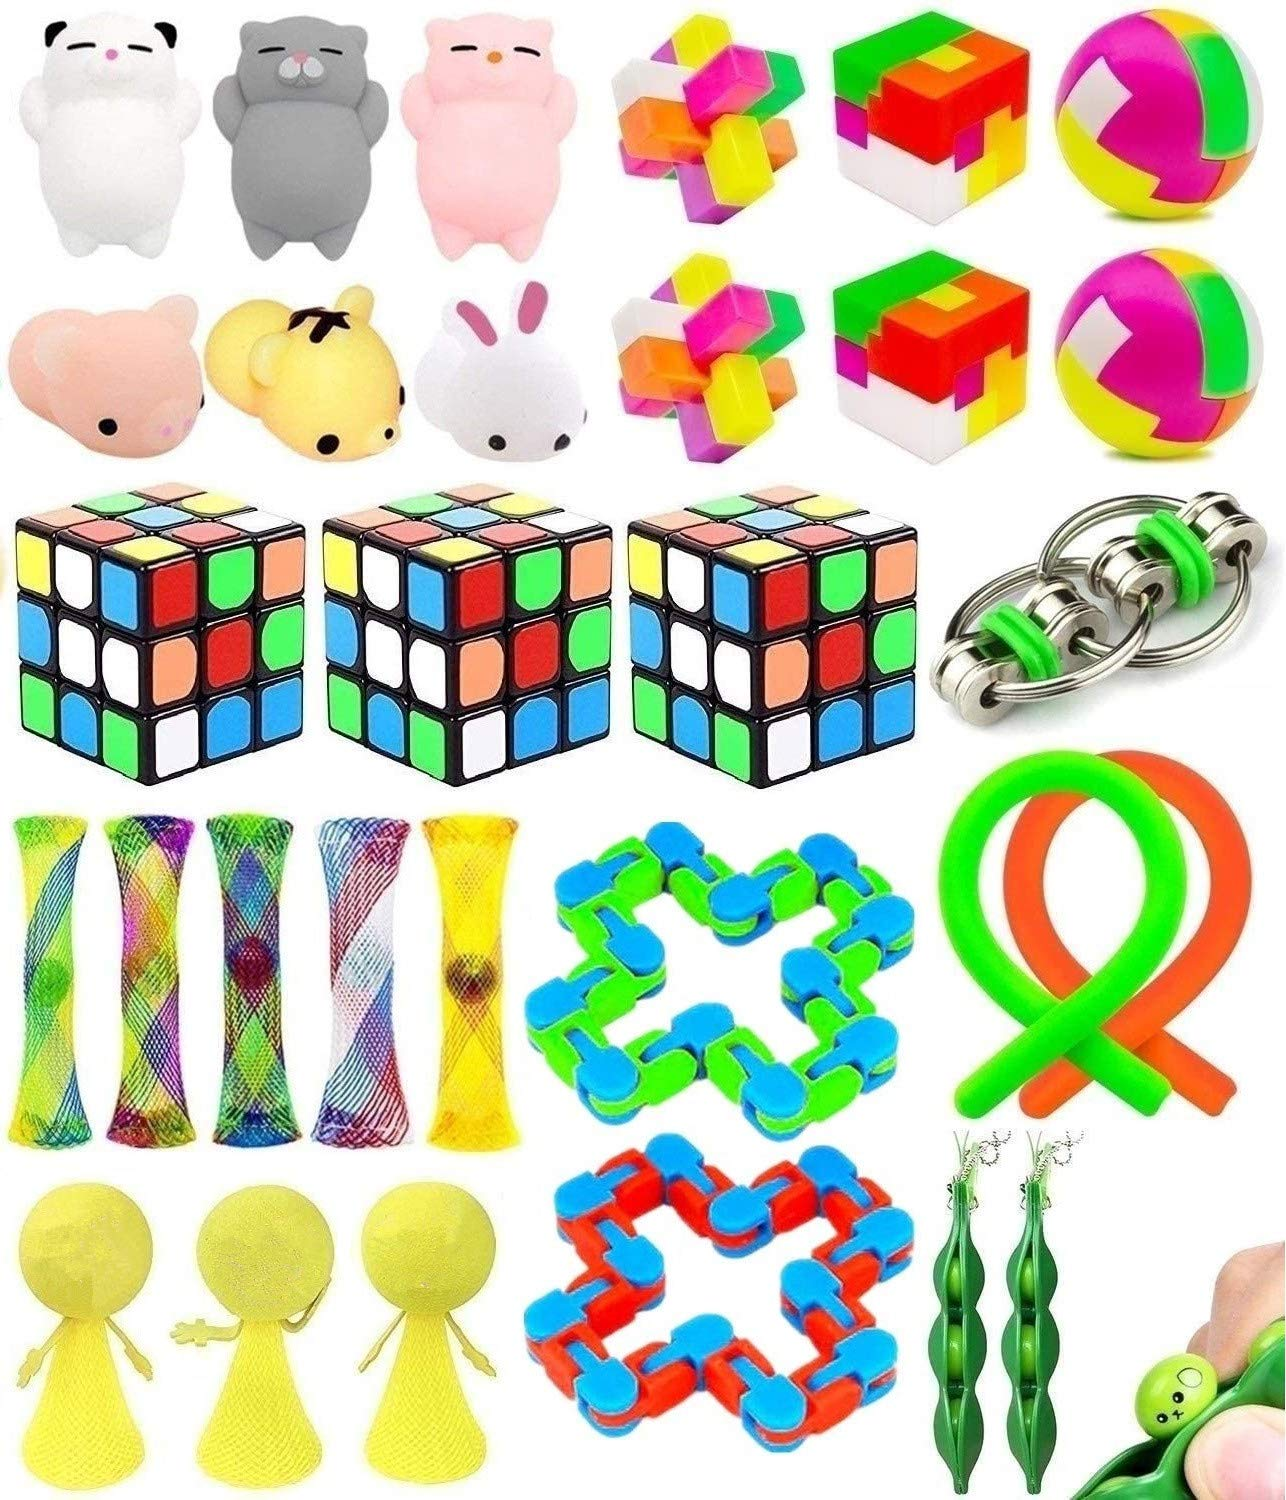 Fidget Toys Set, Sensory Toys Bundle for Stress Relief, Sensory Fidget for Kids and Adults, Sensory Gadget for ADHD Anxiety Autism